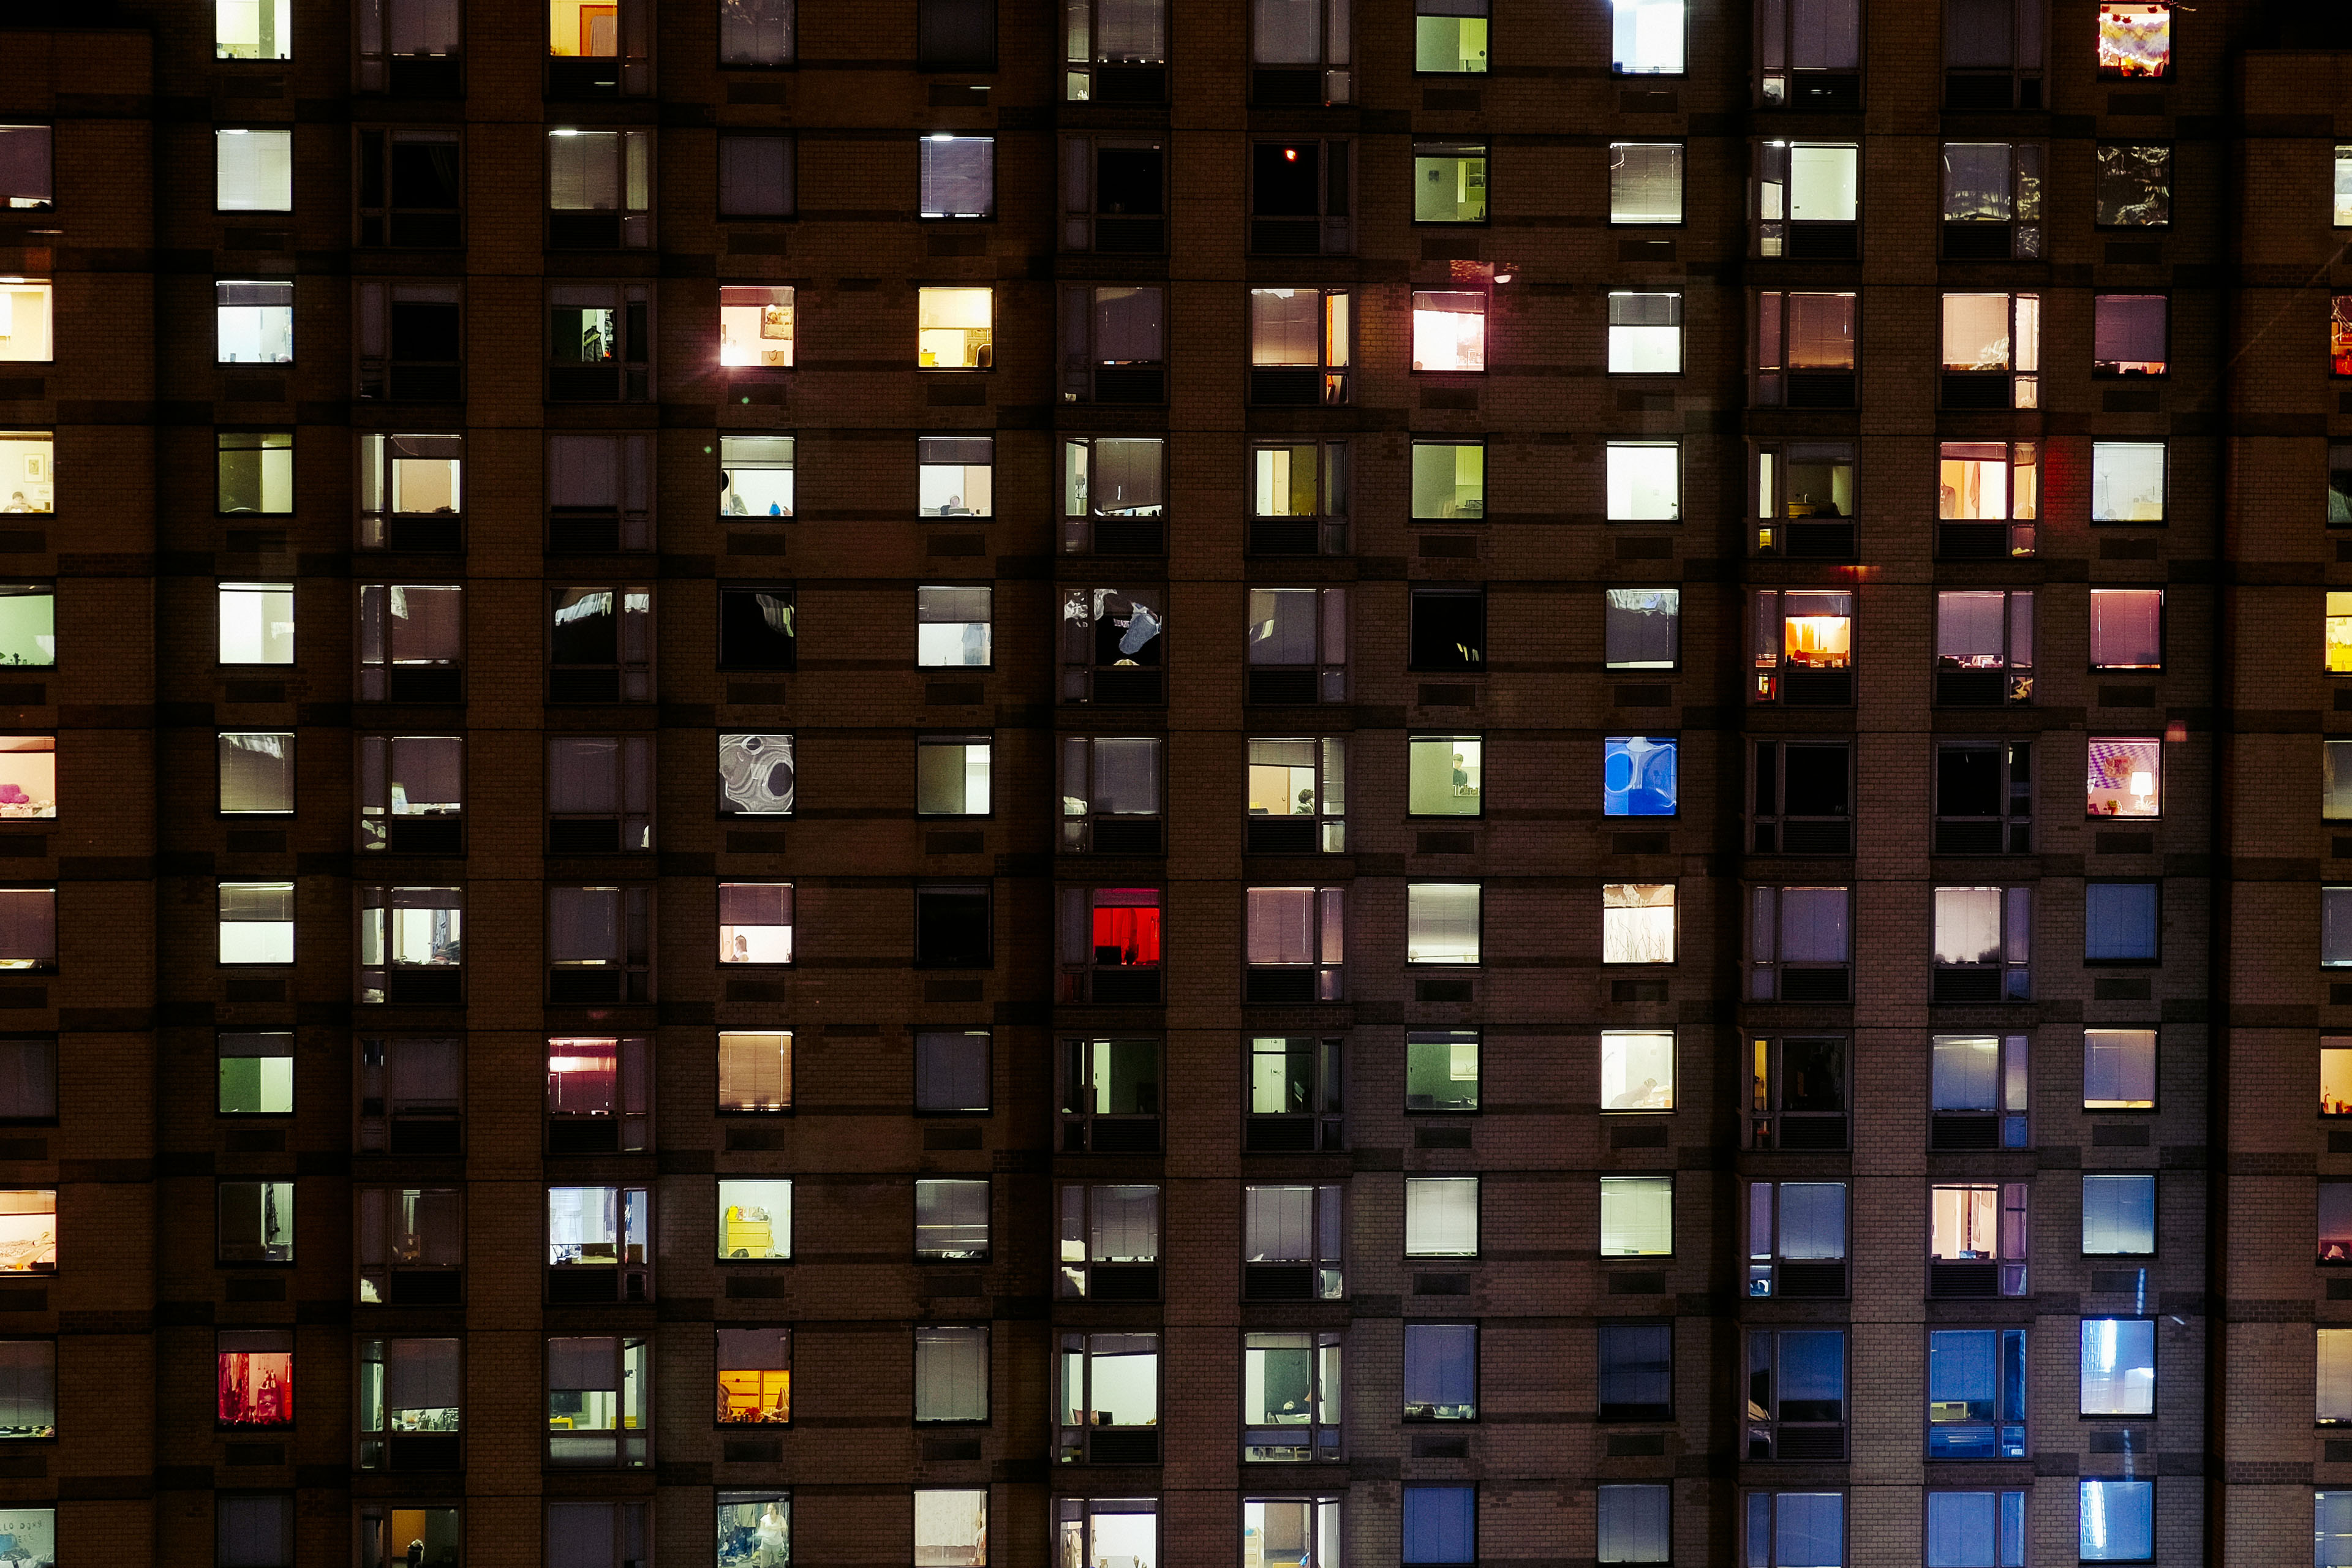 Rooms are lit at night in New York City.